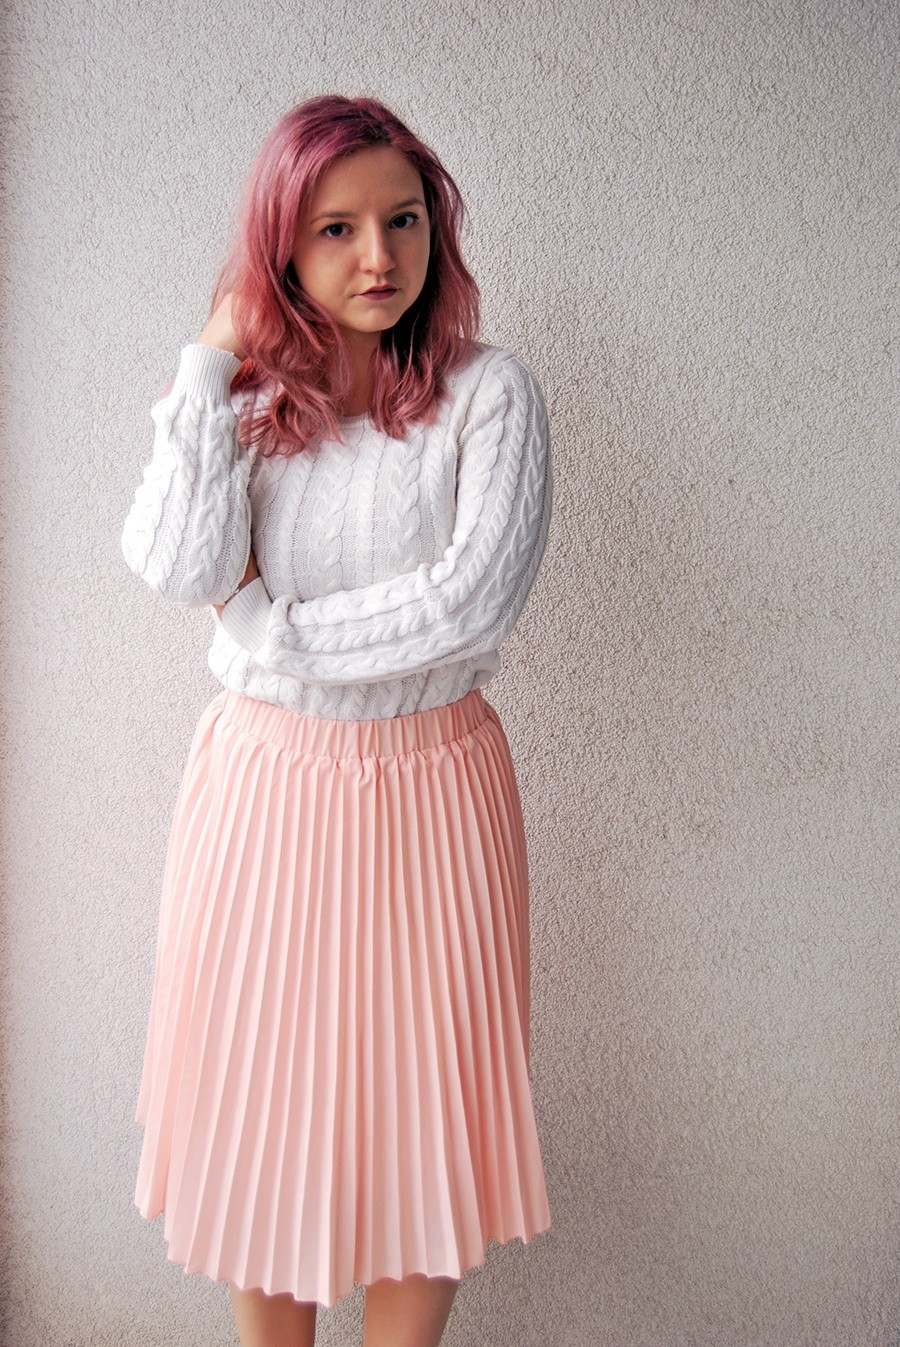 Dare to Wear Pink in Winter